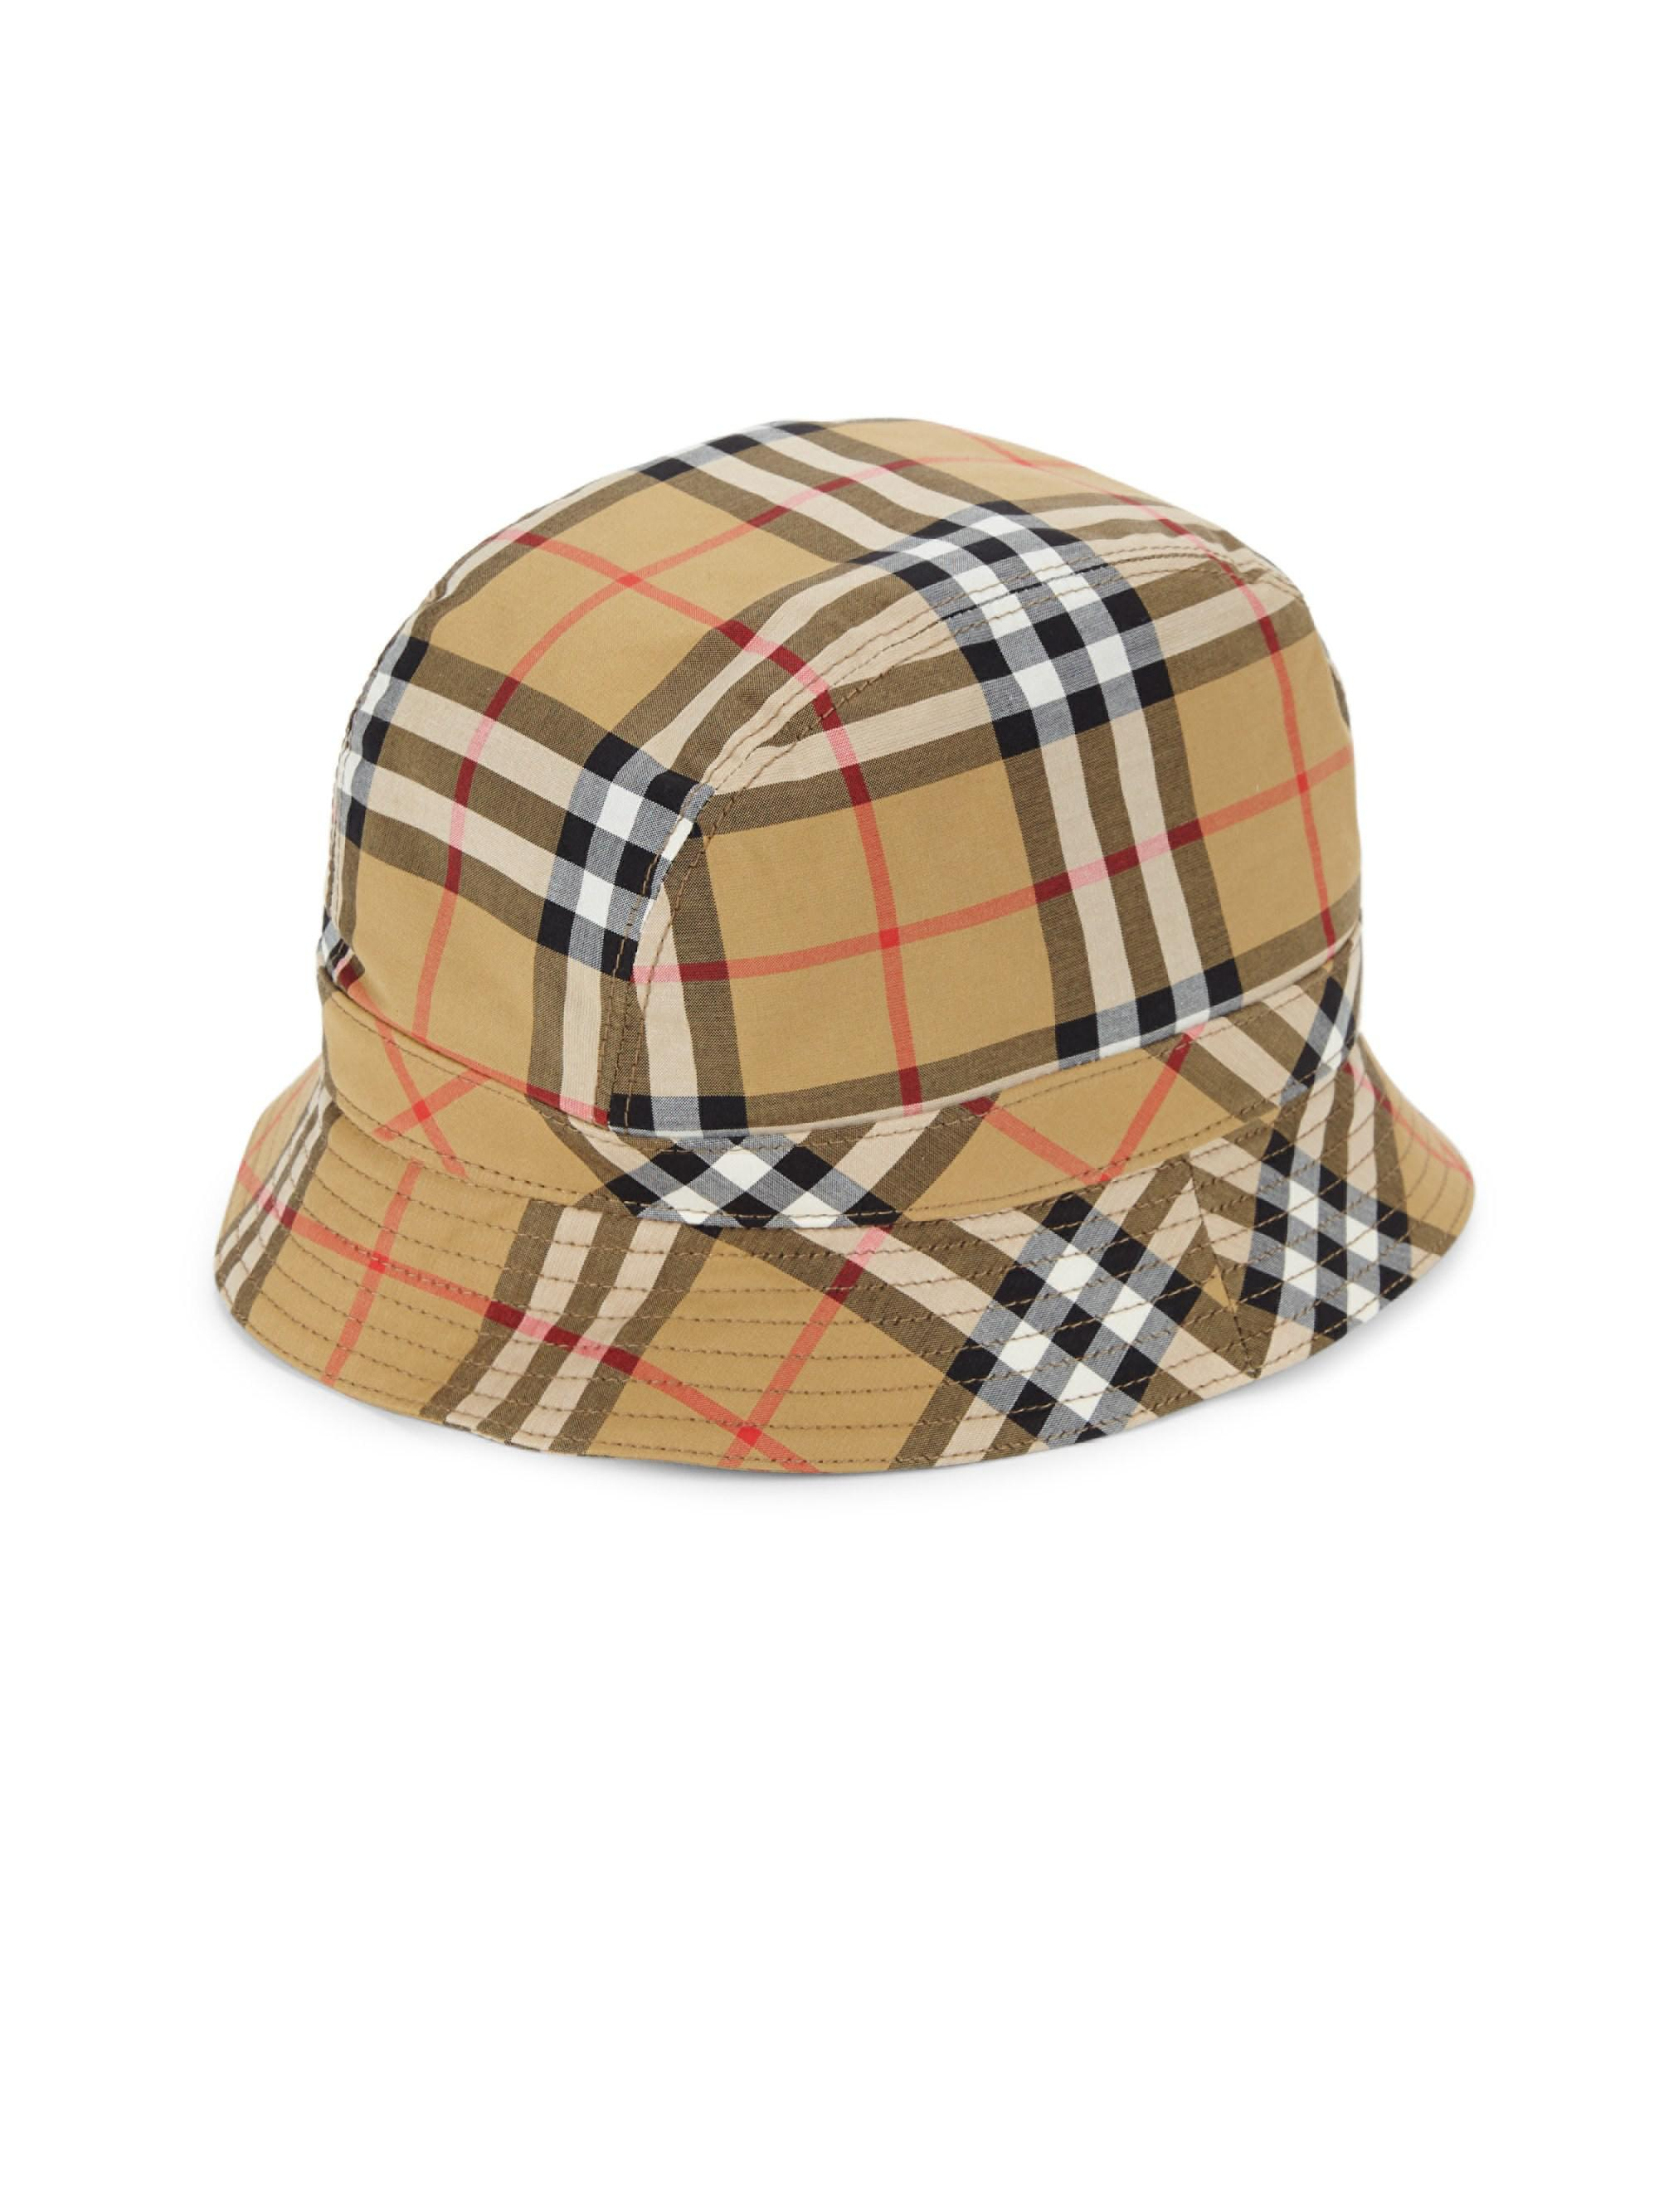 a61479859e3 Lyst - Burberry Tartan Bucket Hat for Men